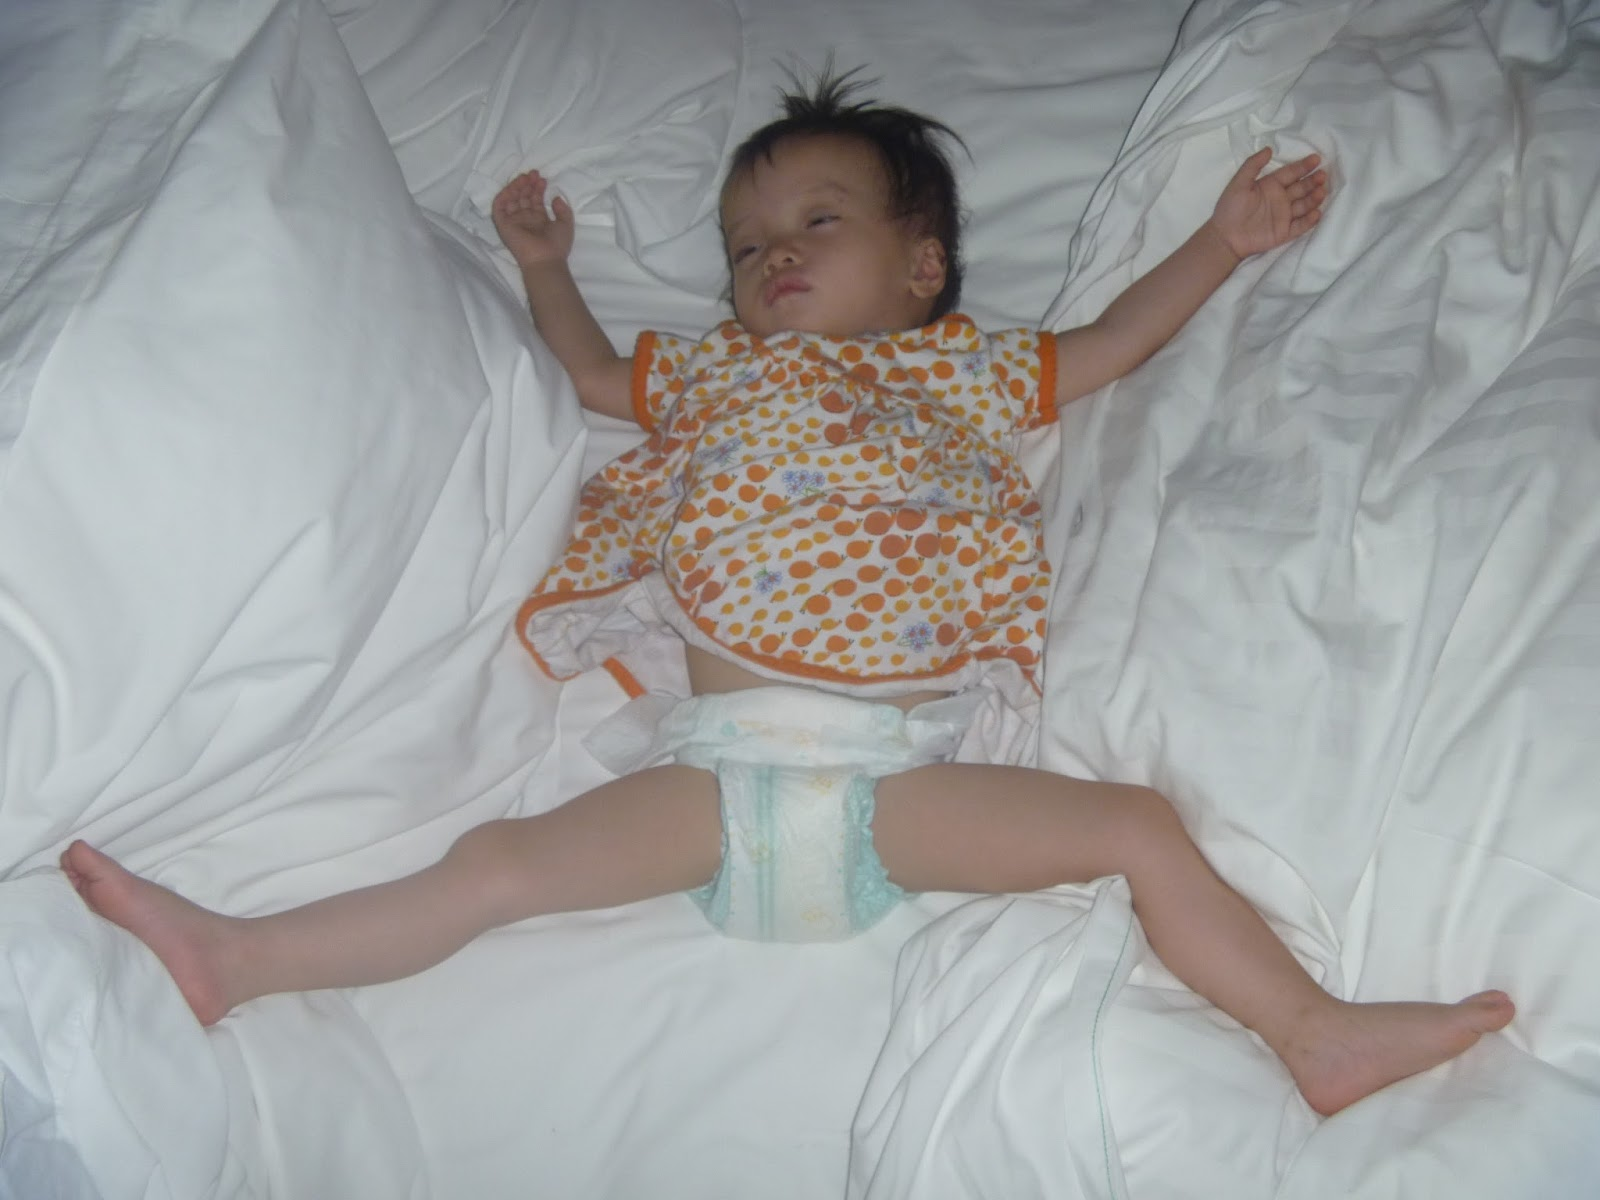 Newborn Baby Legs Bent This Is Often How She Sleeps Either Like This Or With Her